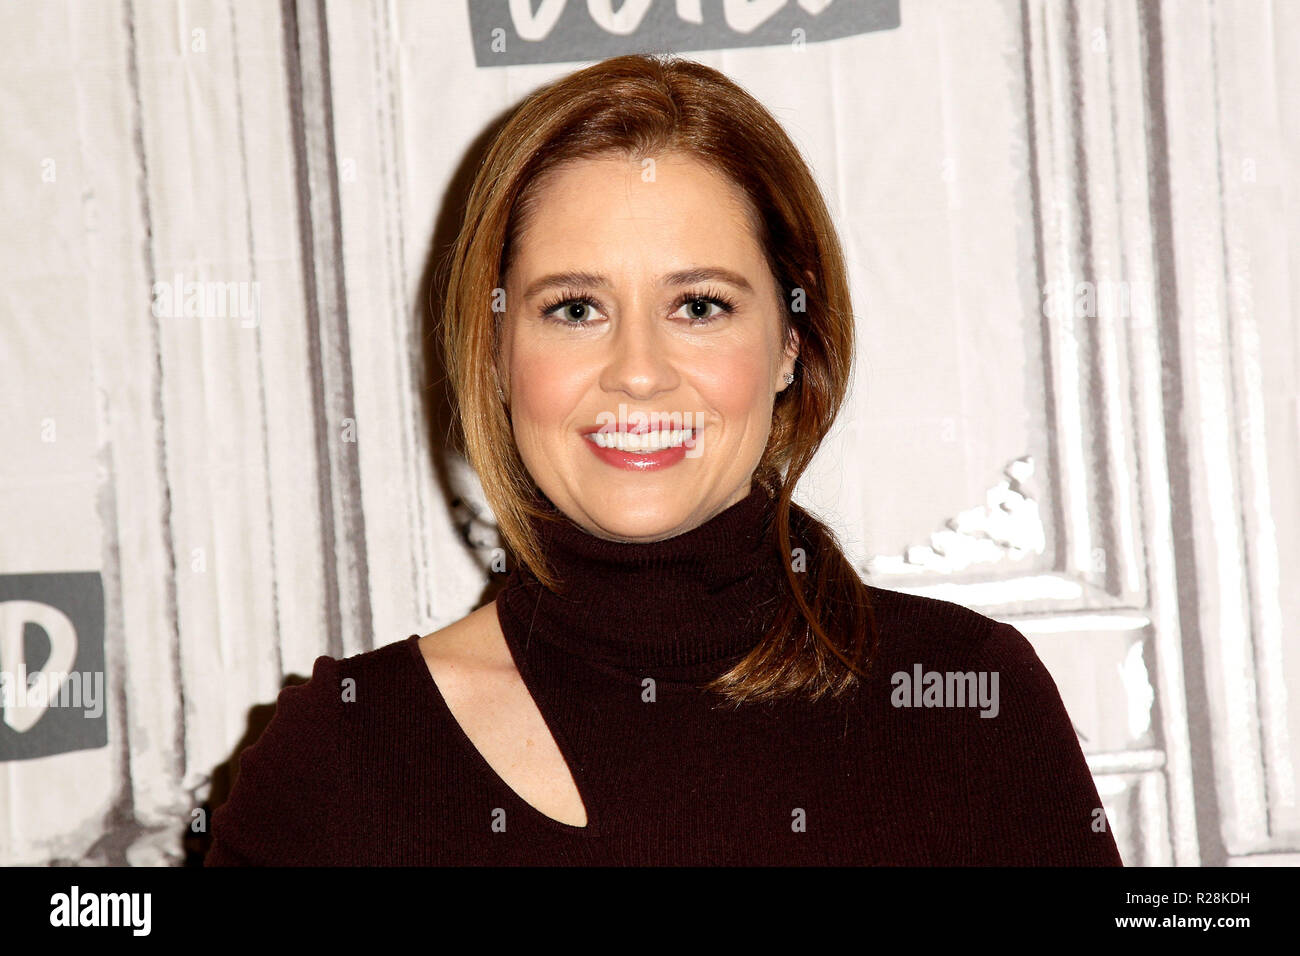 NEW YORK, NY - NOVEMBER 14: Build presents Jenna Fischer discussing